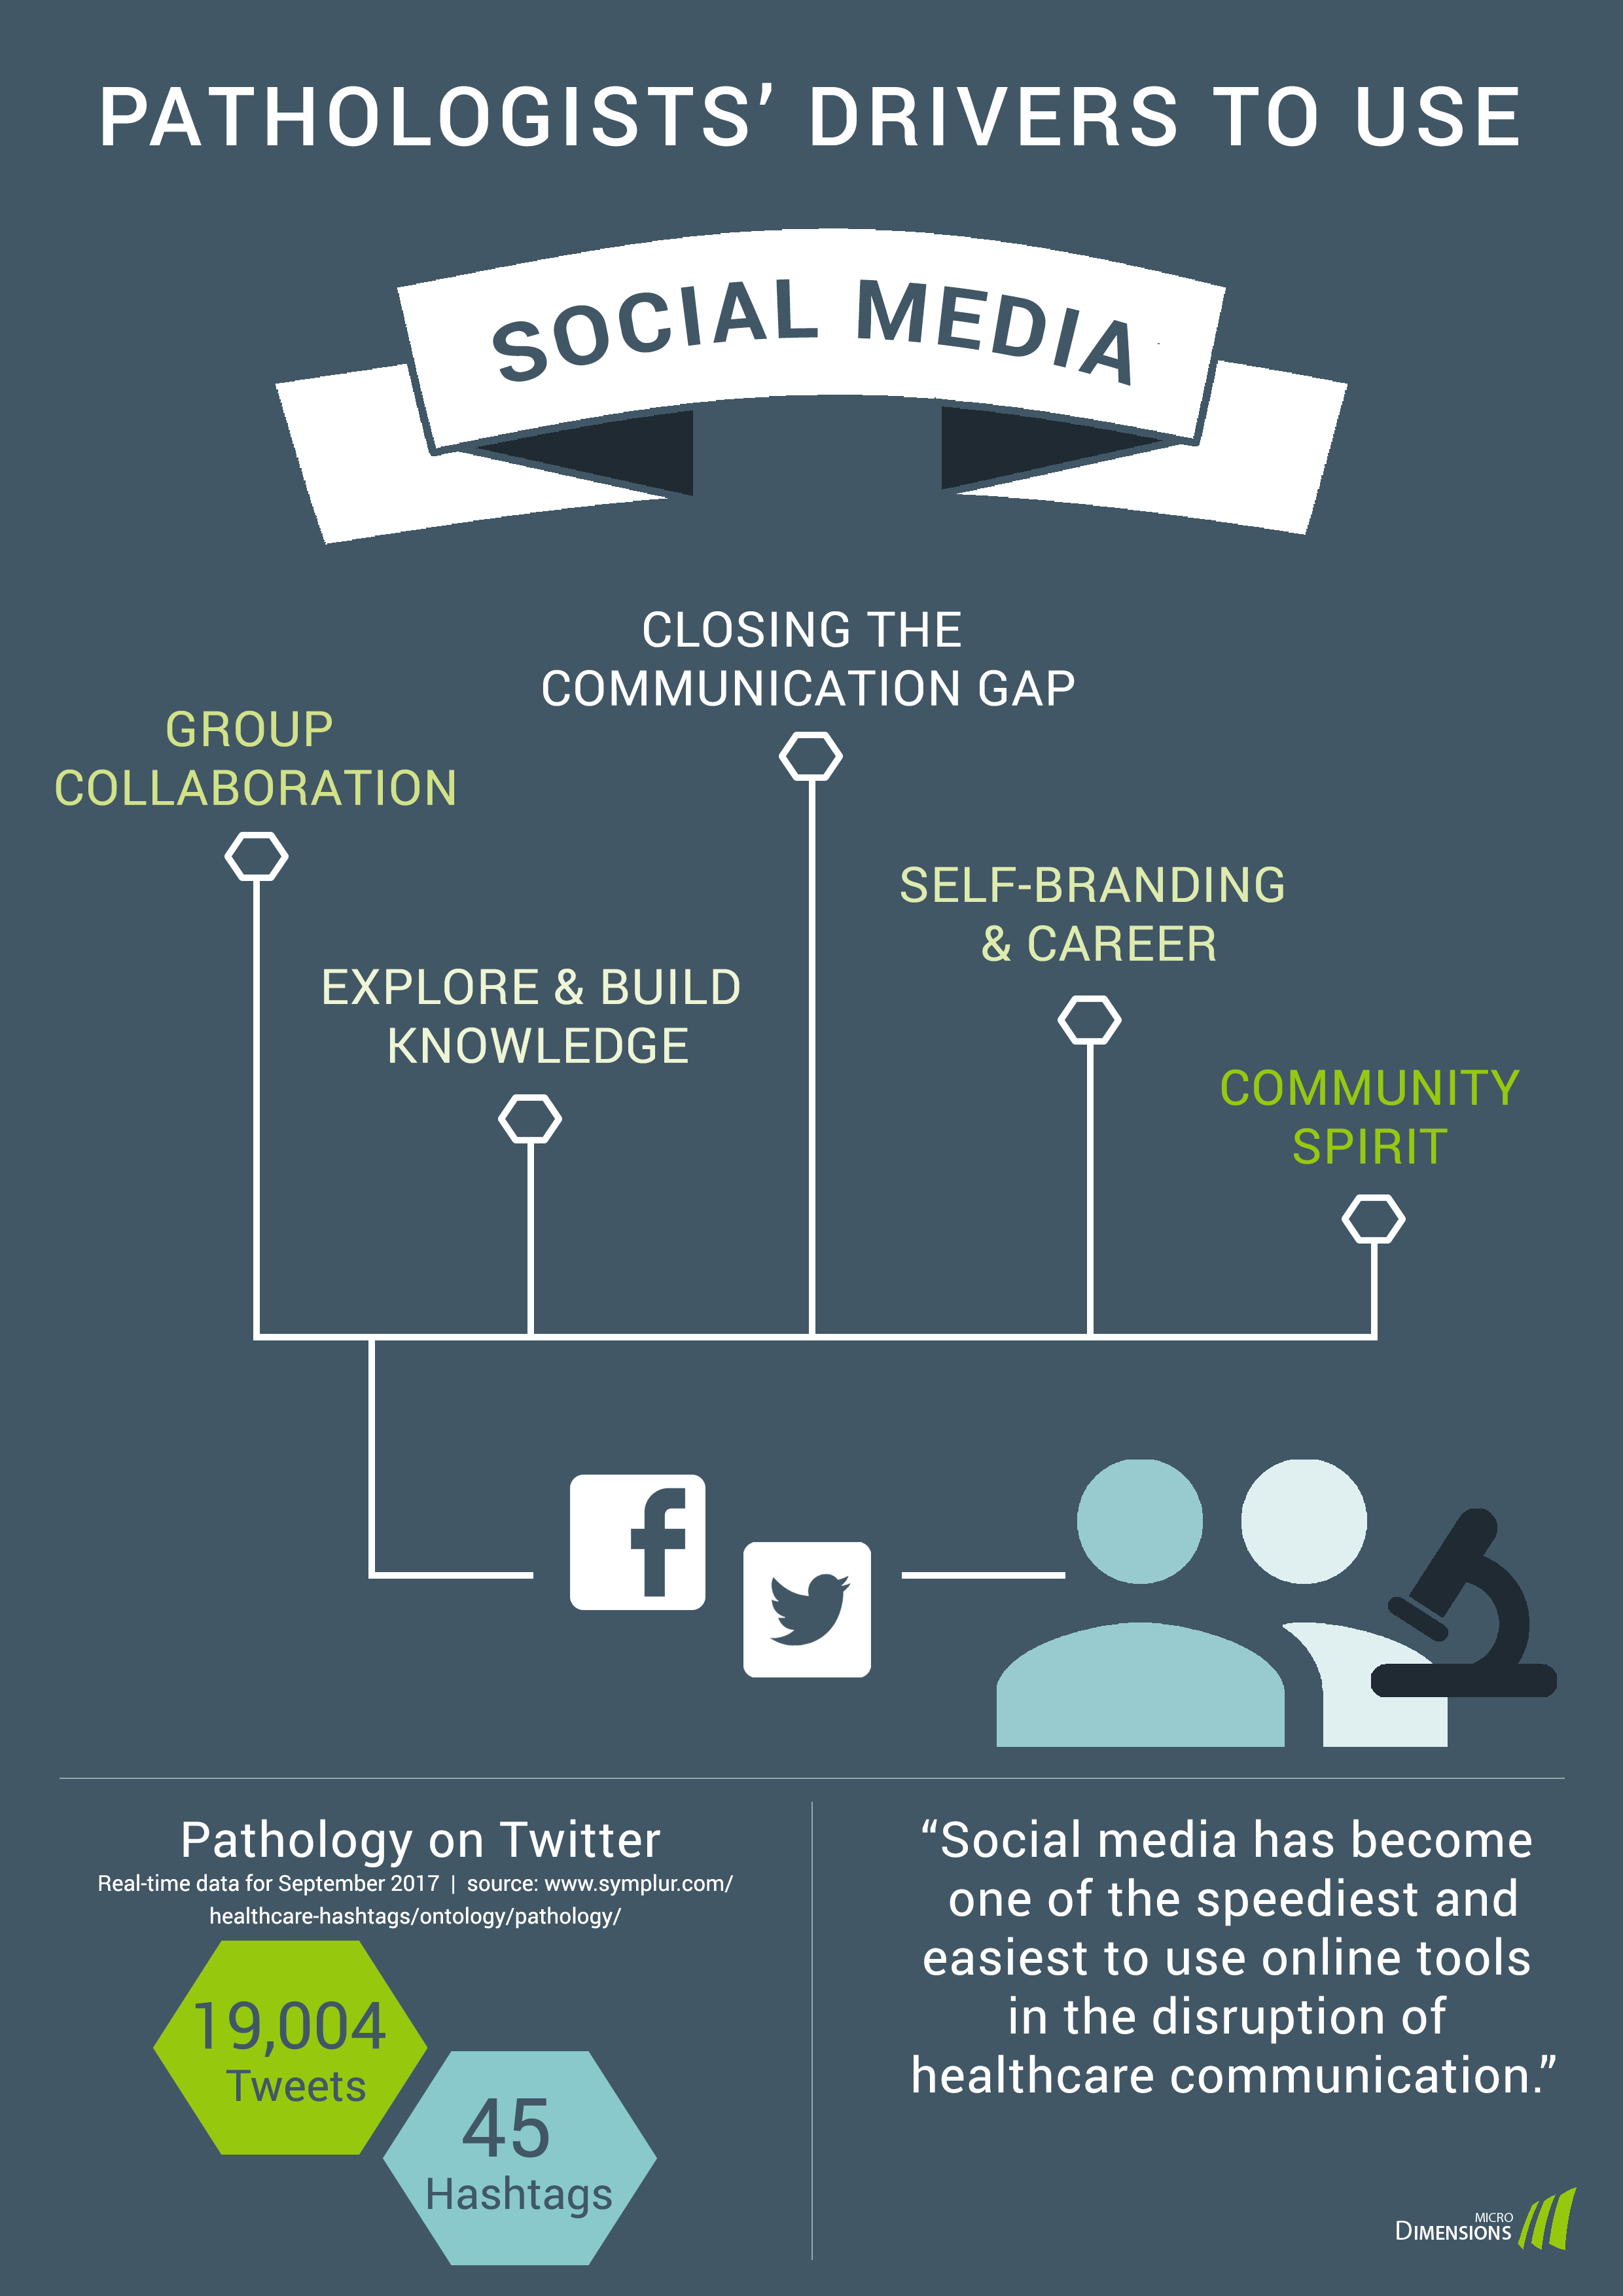 Pathologists' drivers to use social media - a summary. Copyright: microDimensions